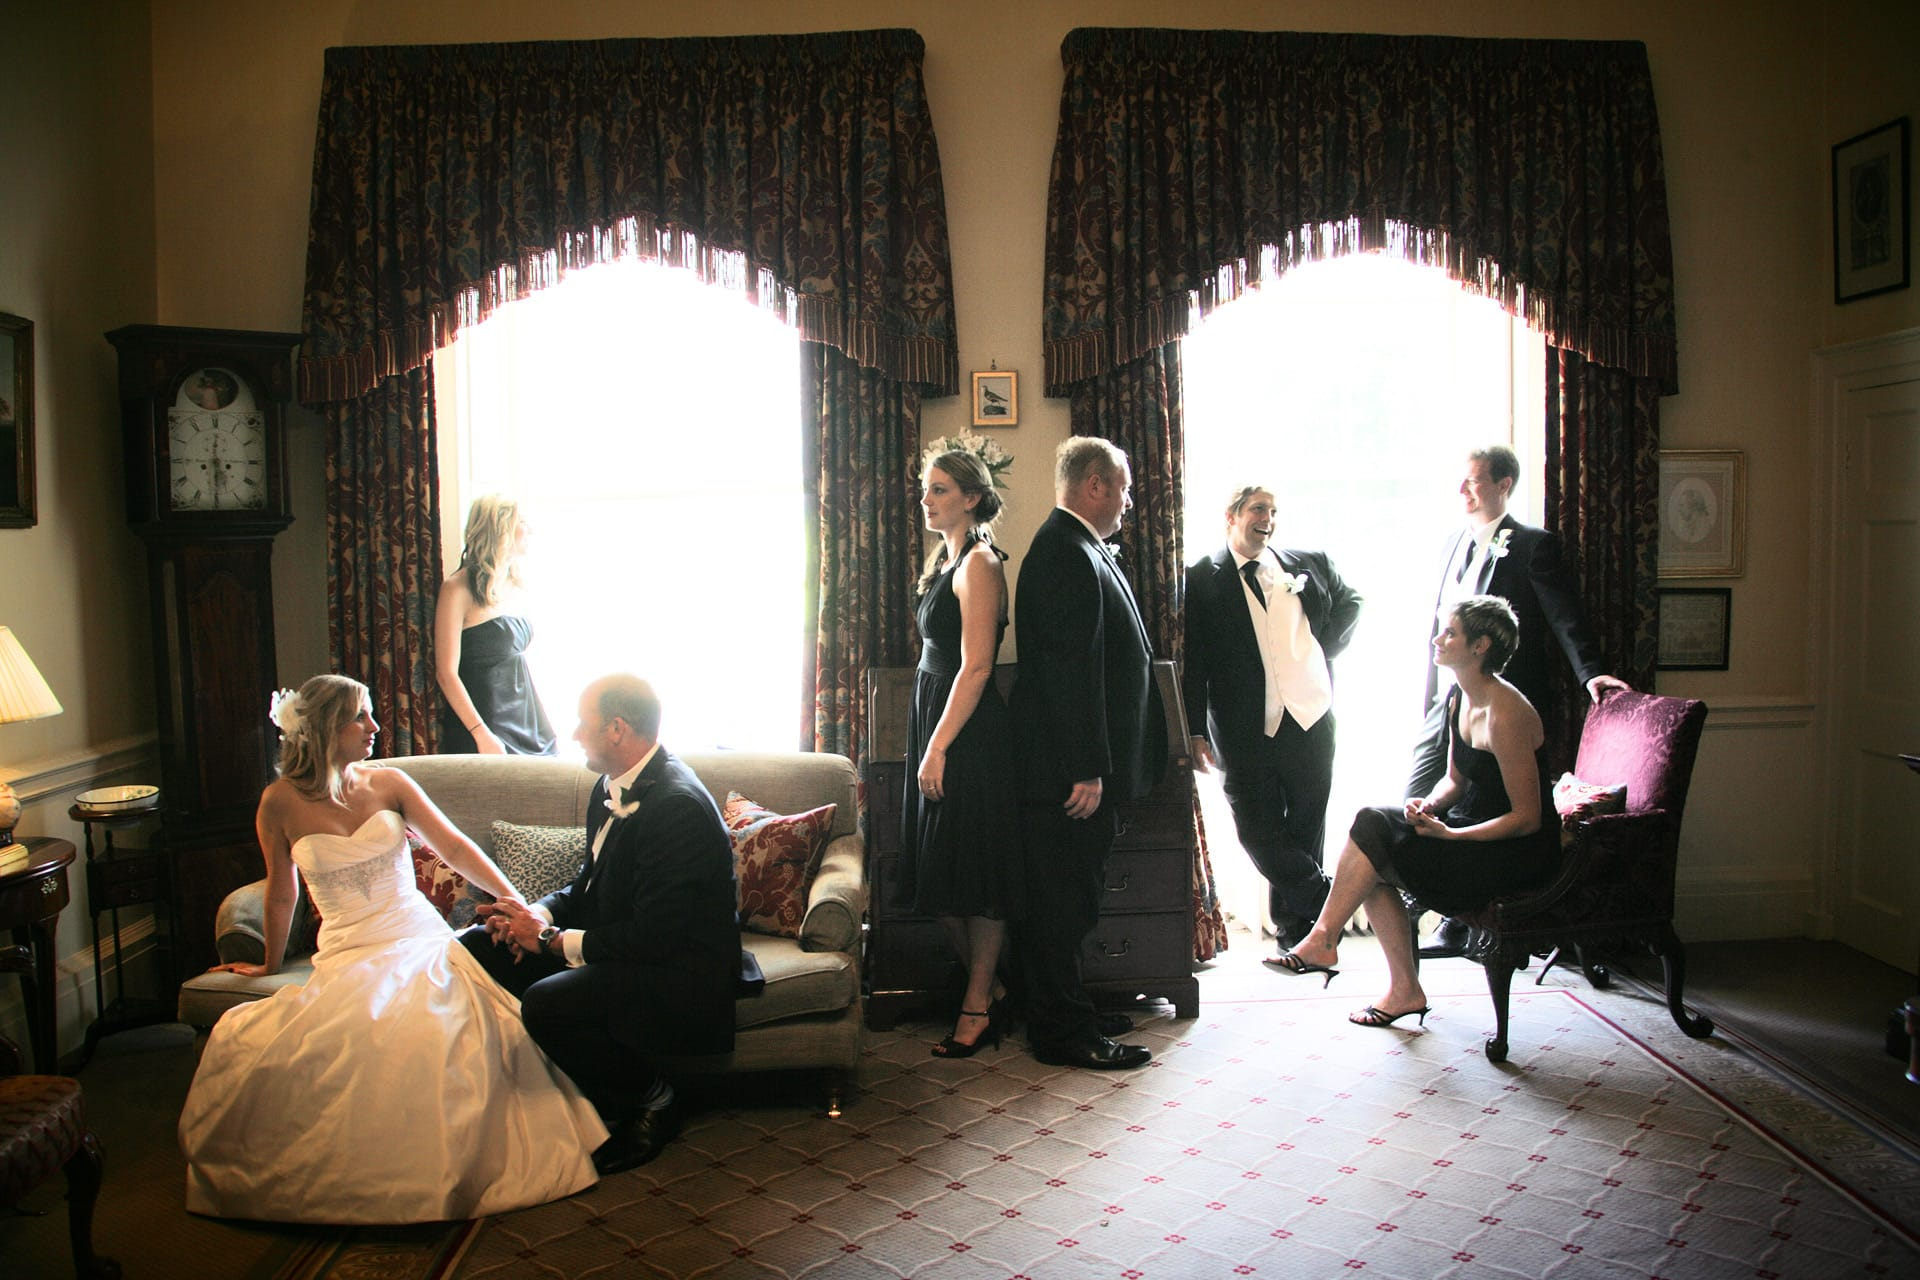 wedding-party-formal-american-style